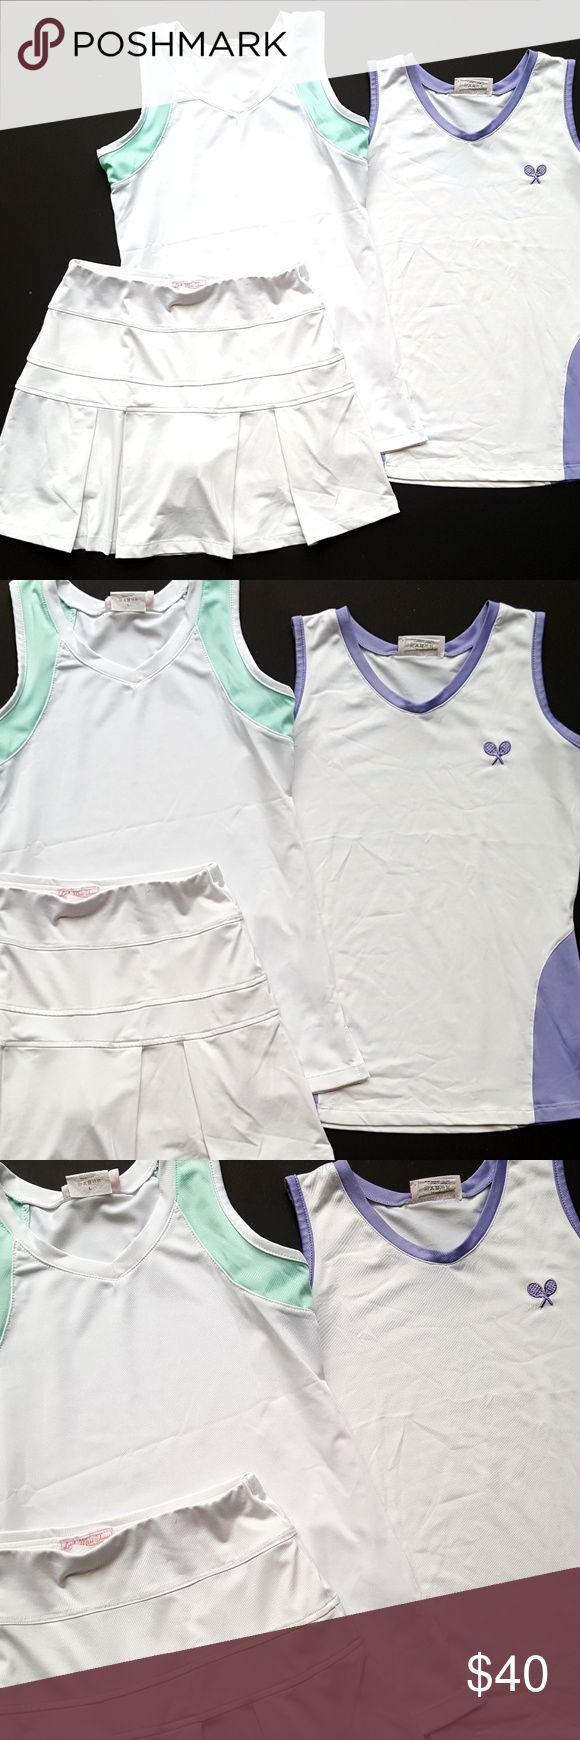 Little Miss Tennis Girls Top Skirt Lot White/Lilac Little Miss Tennis Girls Top Skirt Lot White/Lilac/Mint   Size L (10-12)  EUC  My items come from a smoke-free household, we do have a kitty, so an occasional hair may occur! Little Miss Tennis Matching Sets